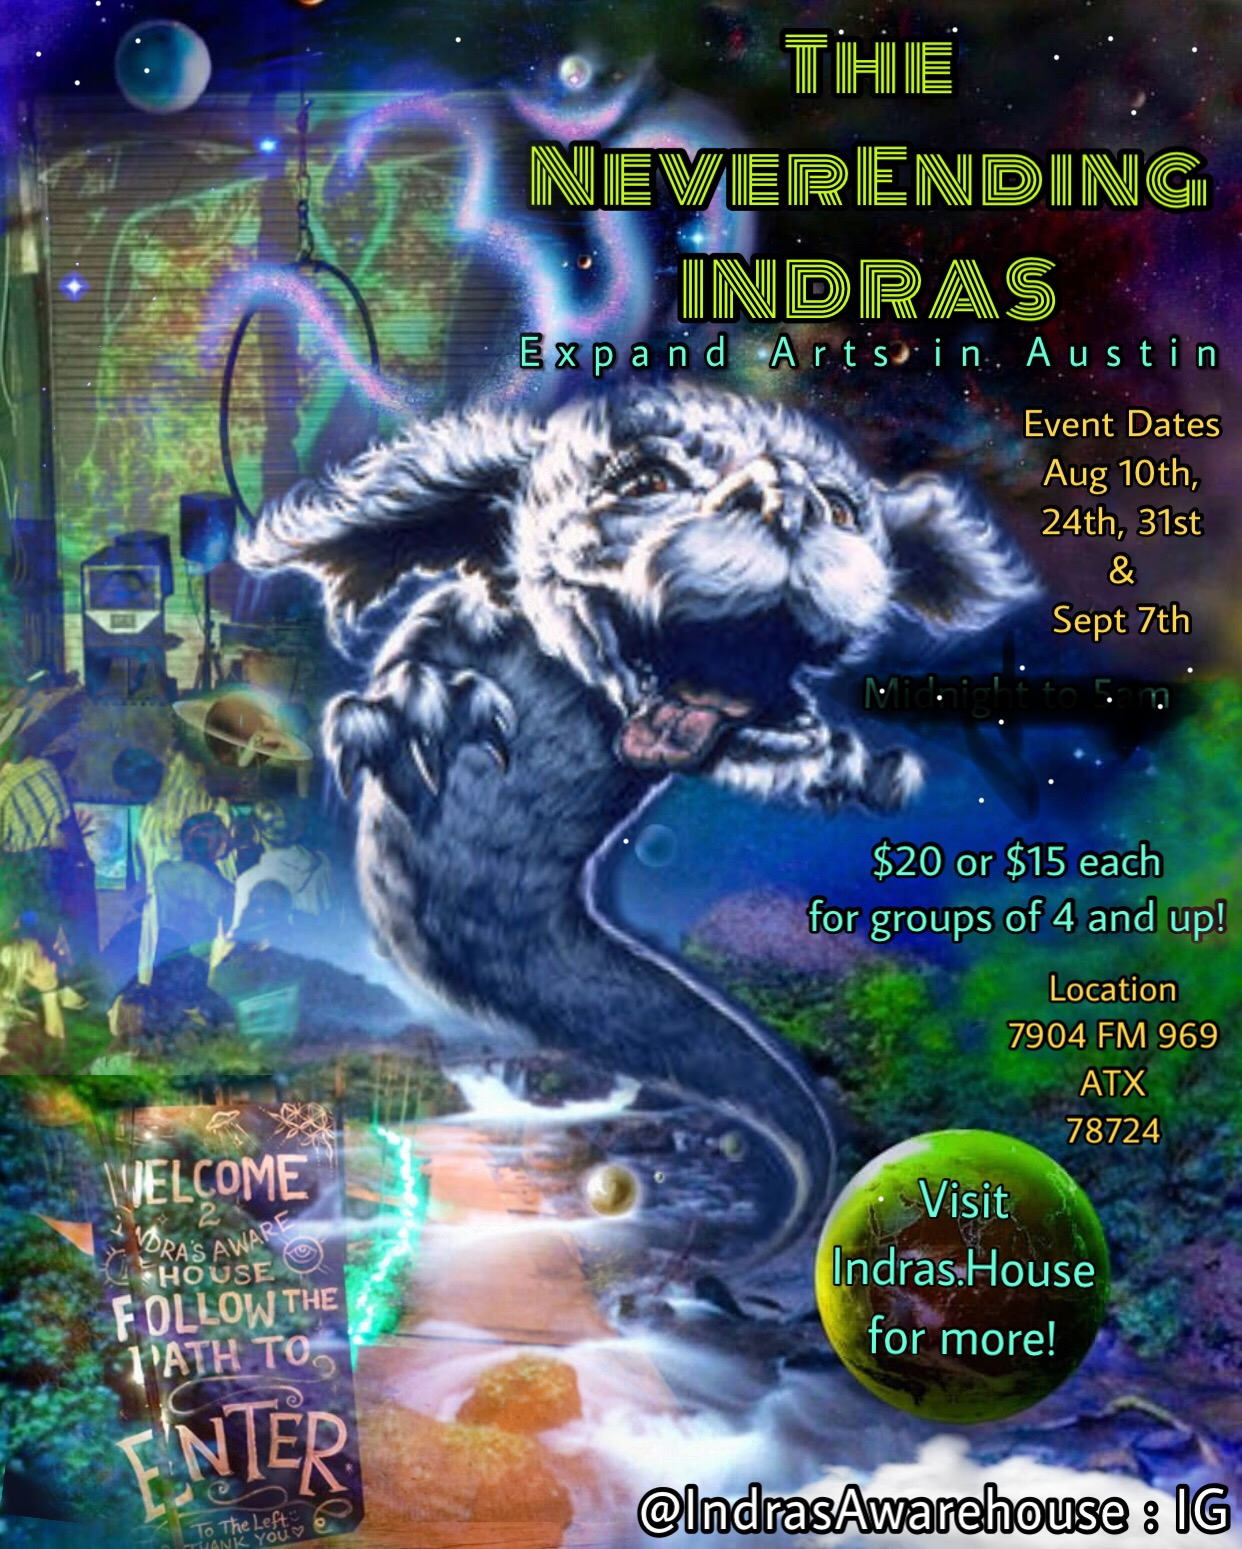 The NeverEnding Indras - Expand Arts in Austin @ Indras Awarehouse